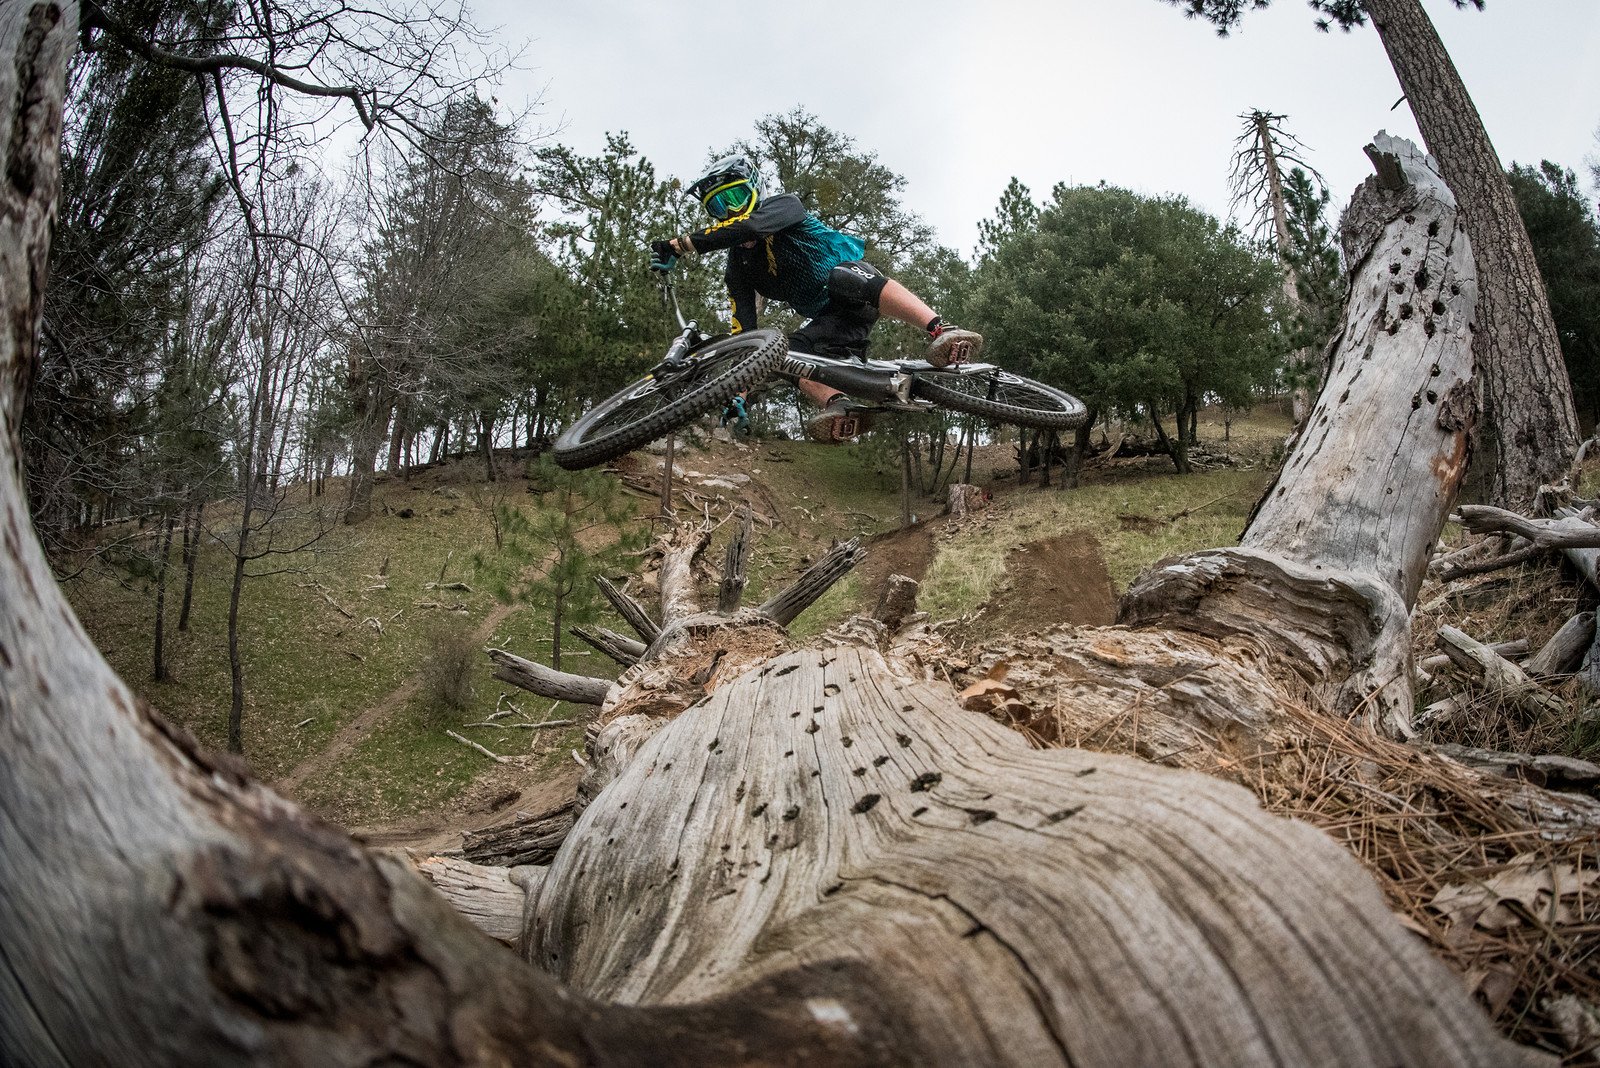 Luca Jumping a Tree - FredLikesTrikes - Mountain Biking Pictures - Vital MTB